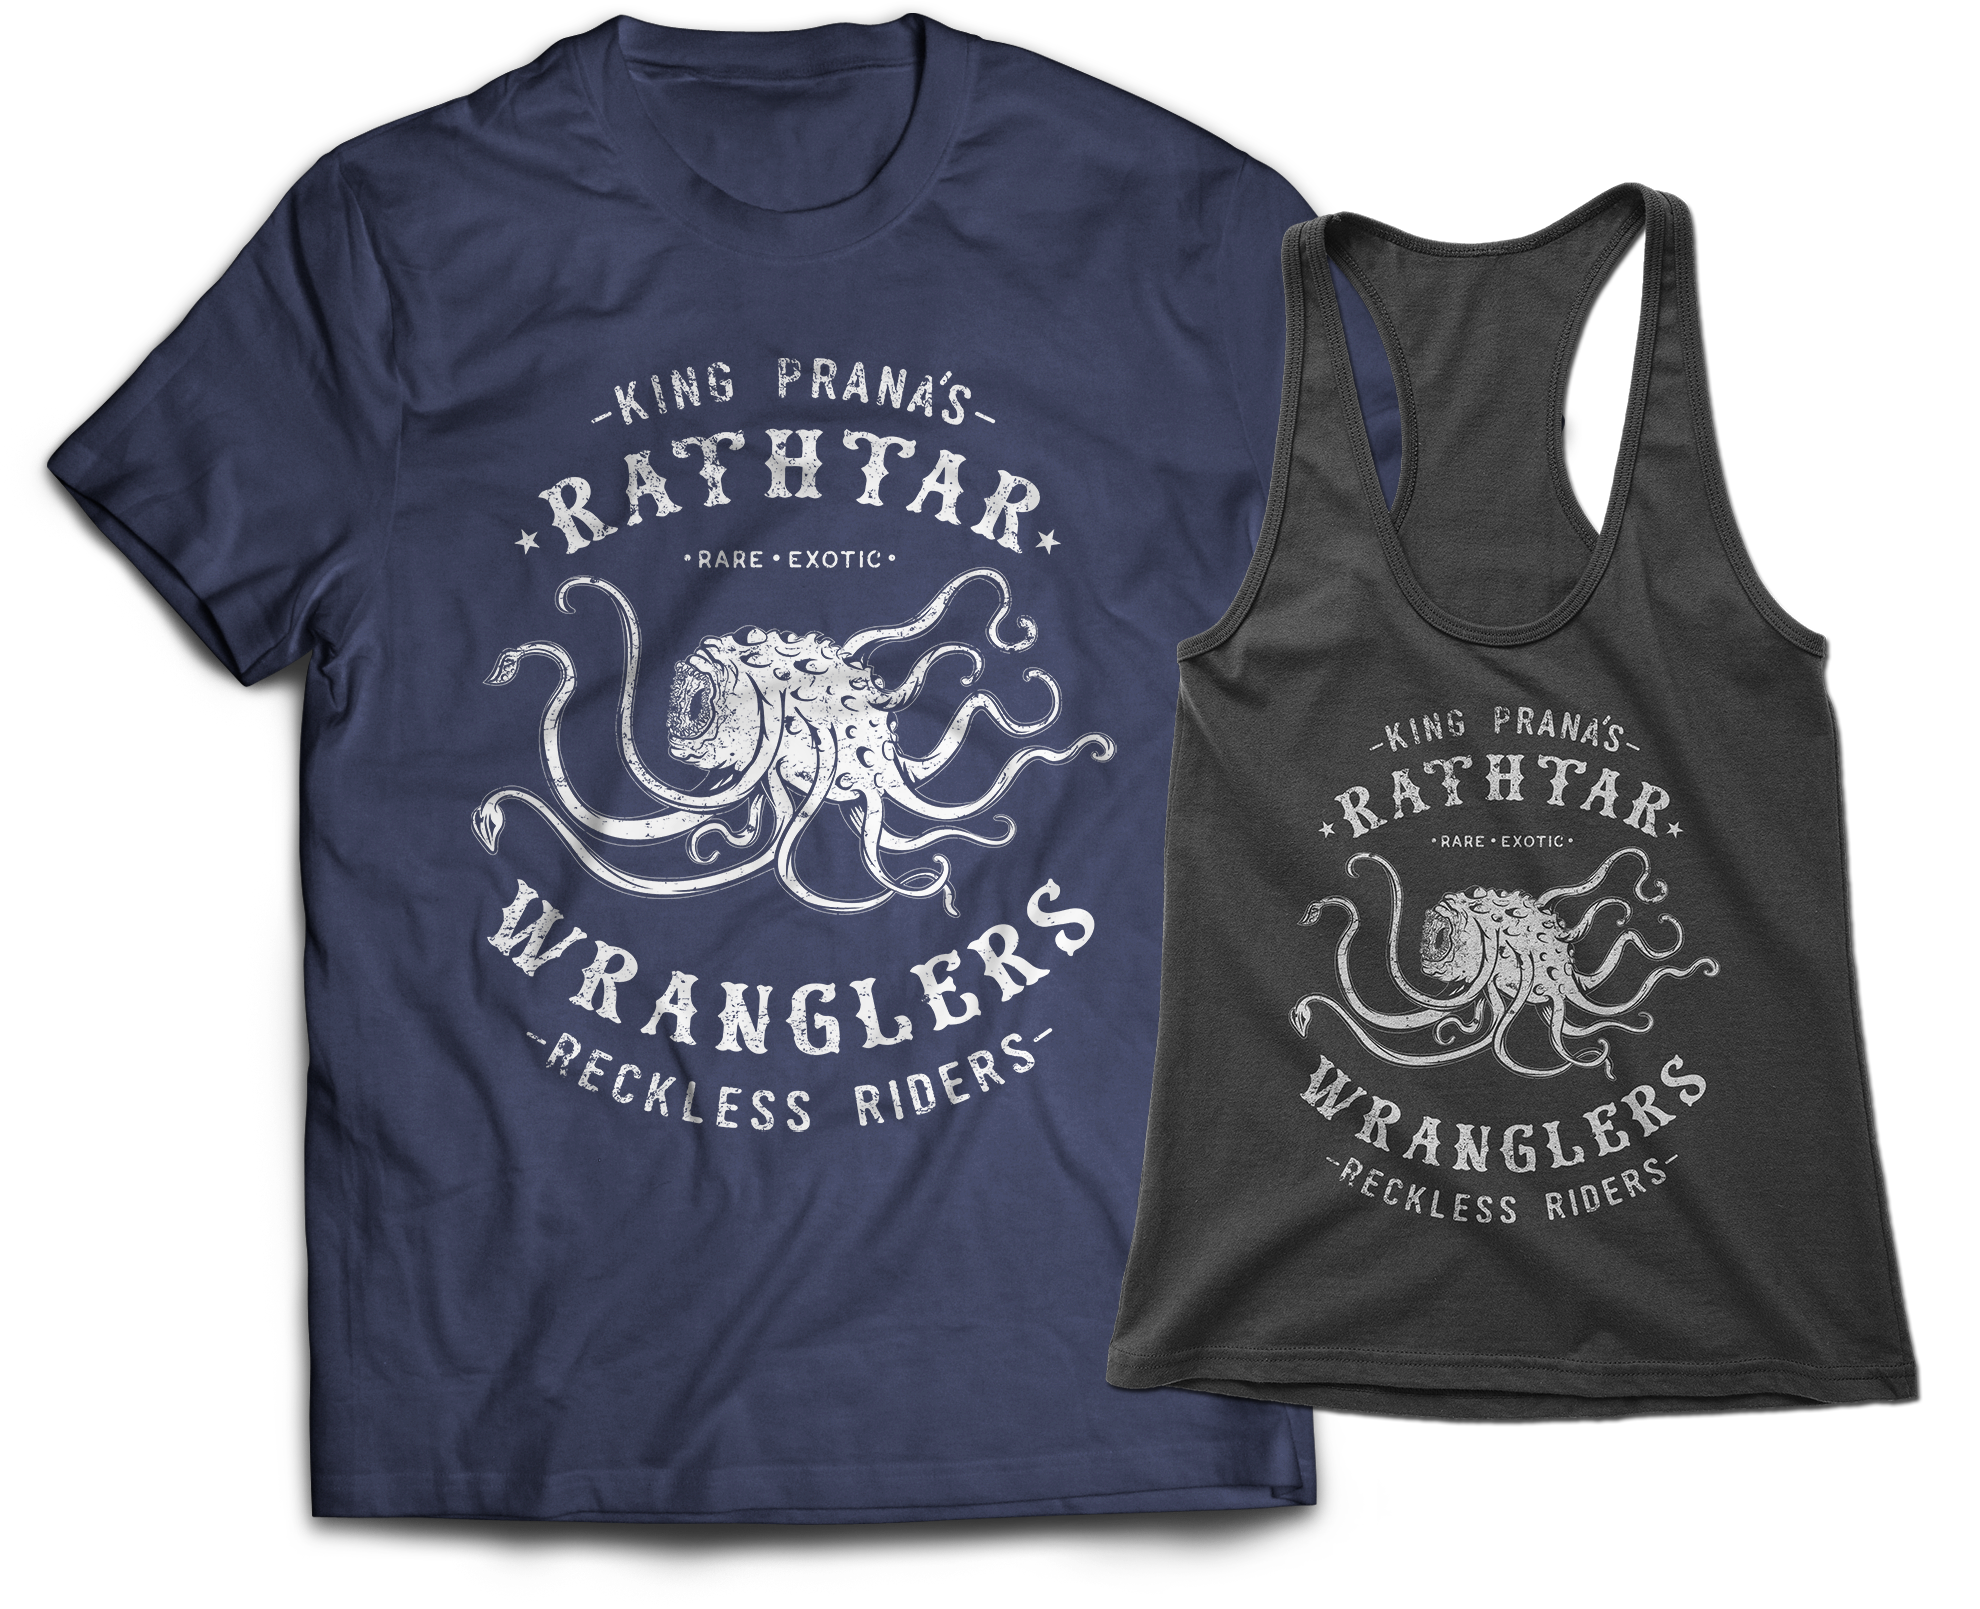 Rathtar Wranglers T-shirt and Tank Top Teepublic Jlane Design